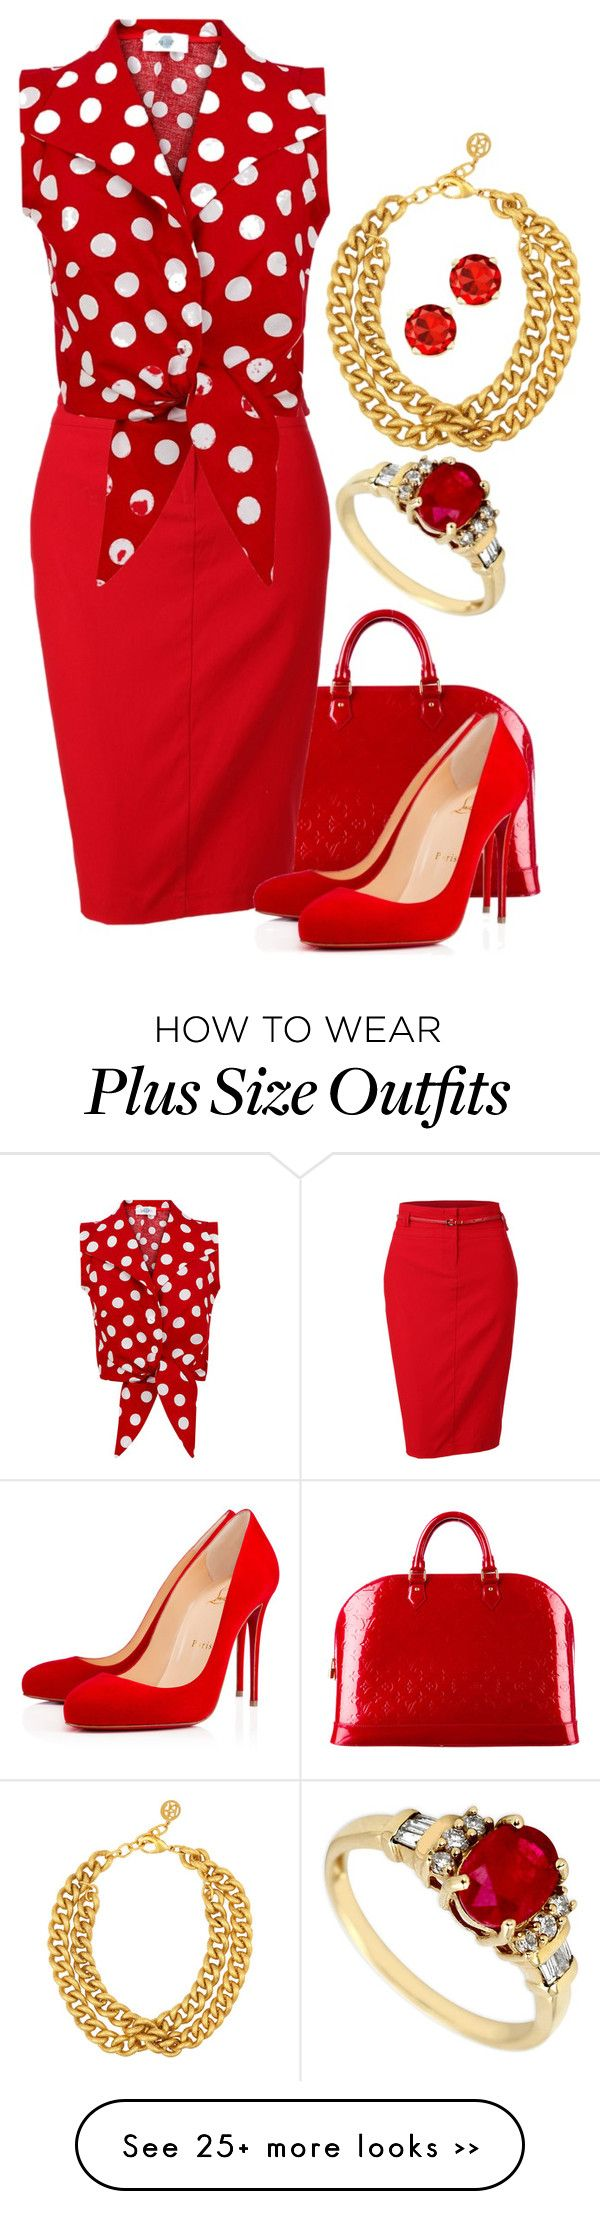 """Seeing Red and loving it!!"" by runners on Polyvore featuring Louis Vuitton, LE3NO, Christian Louboutin and Ben-Amun"